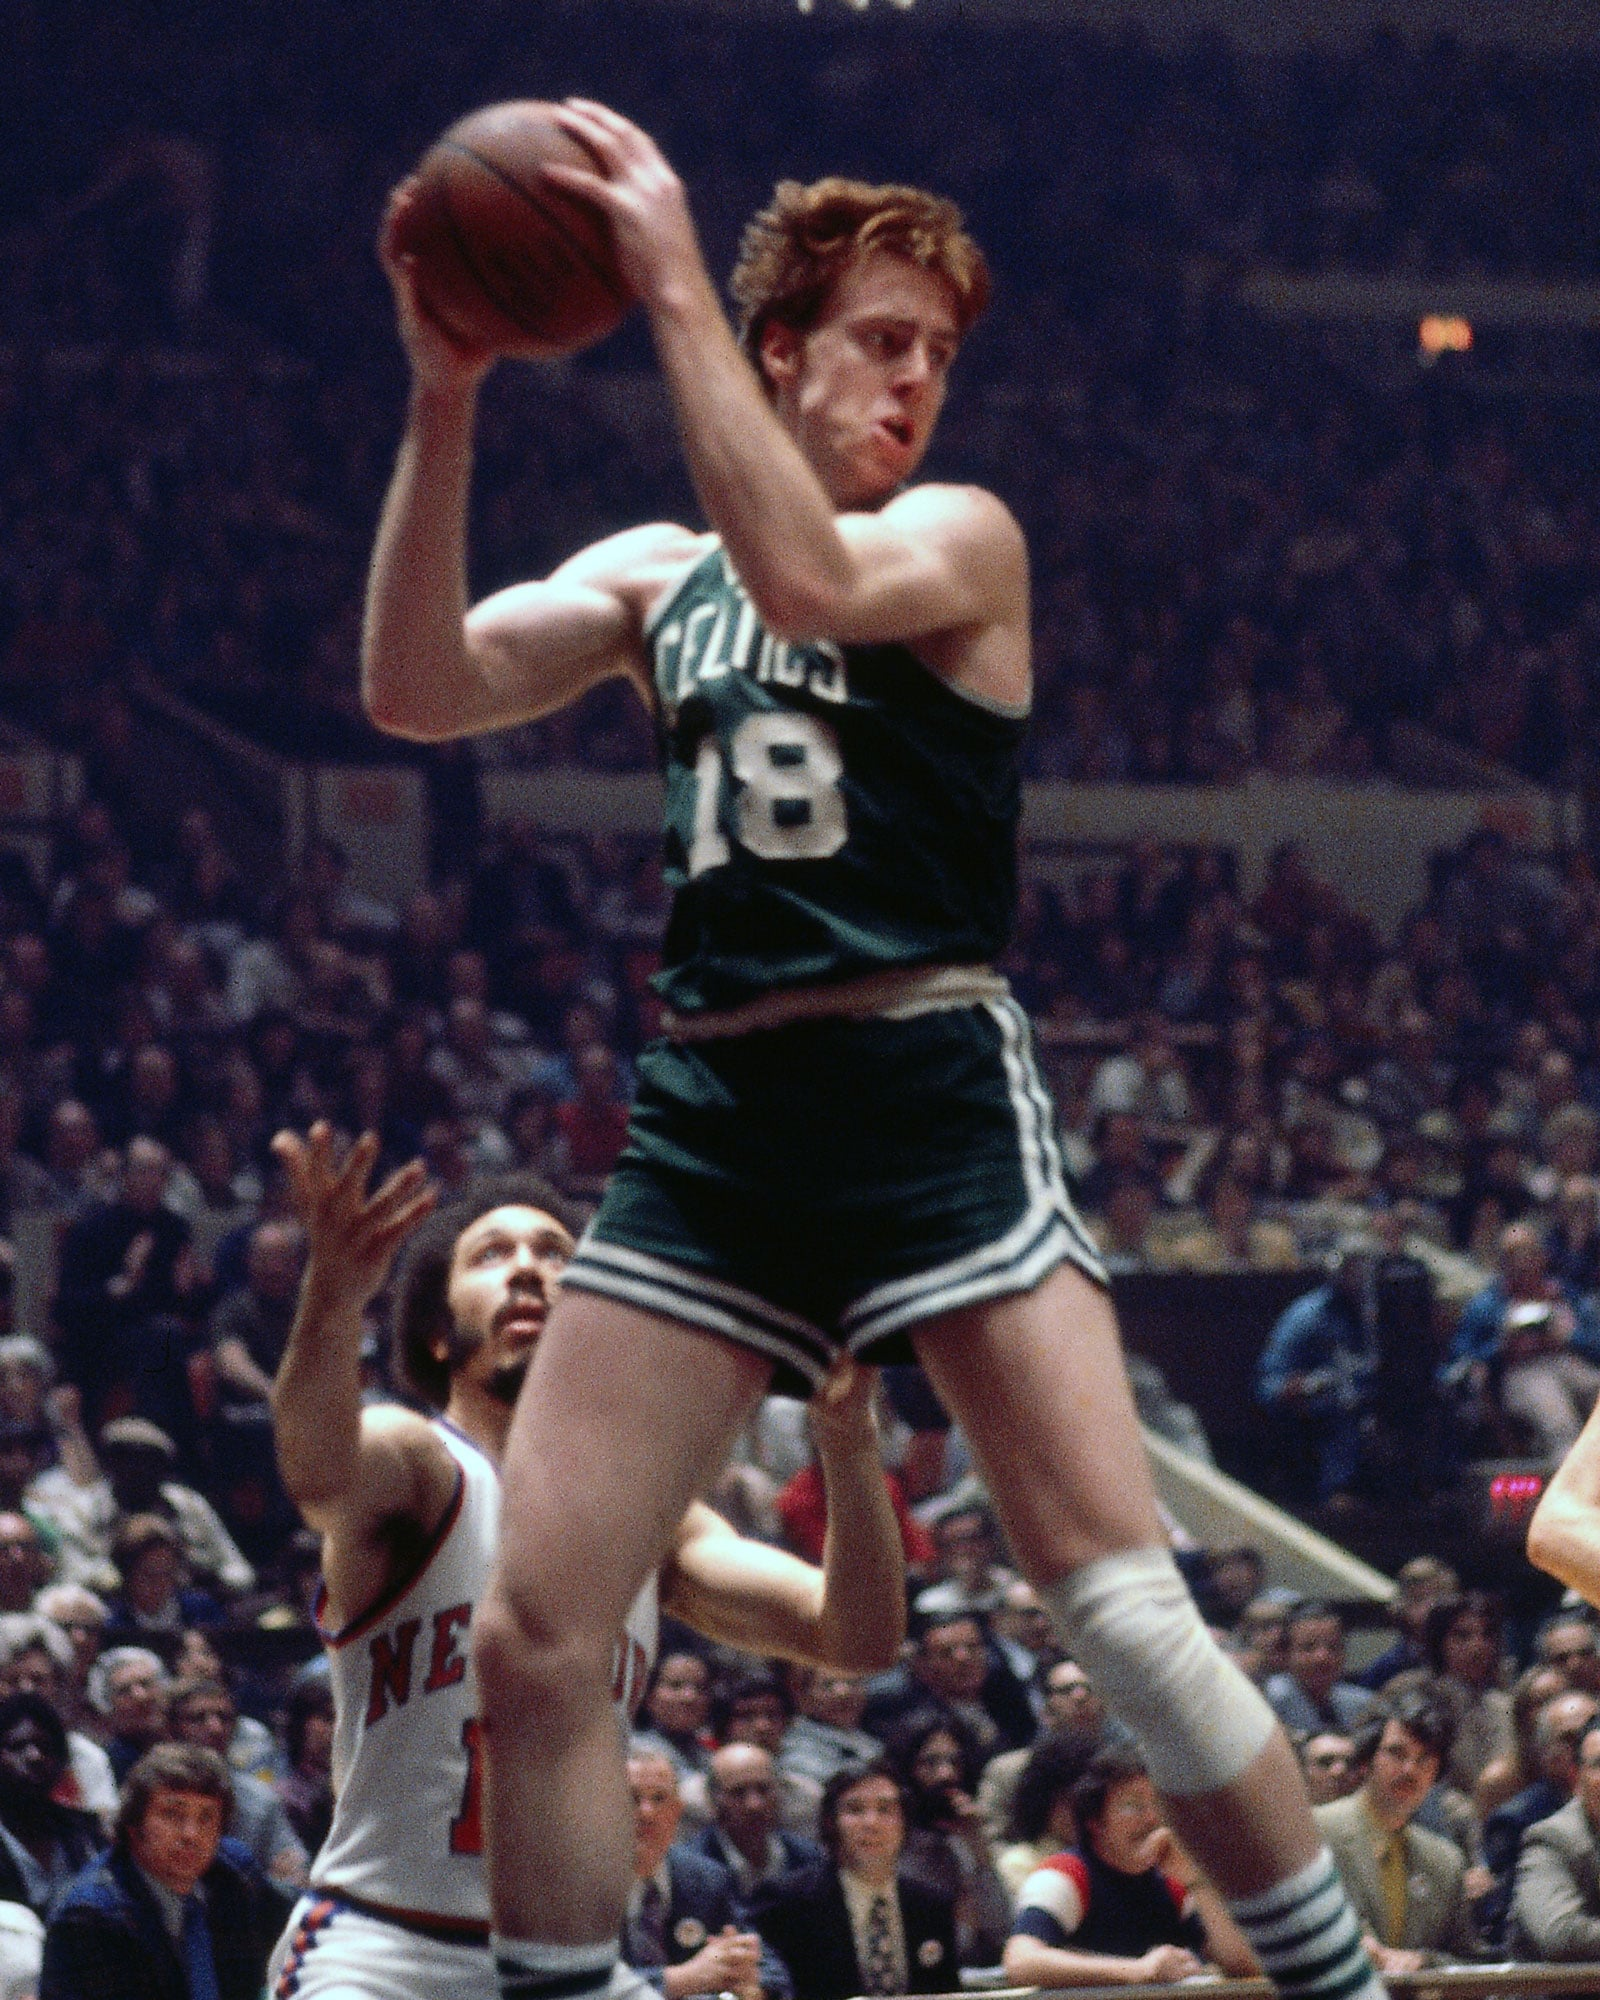 Dave Cowens of the Boston Celtics won MVP of the 1973 All-Star game.